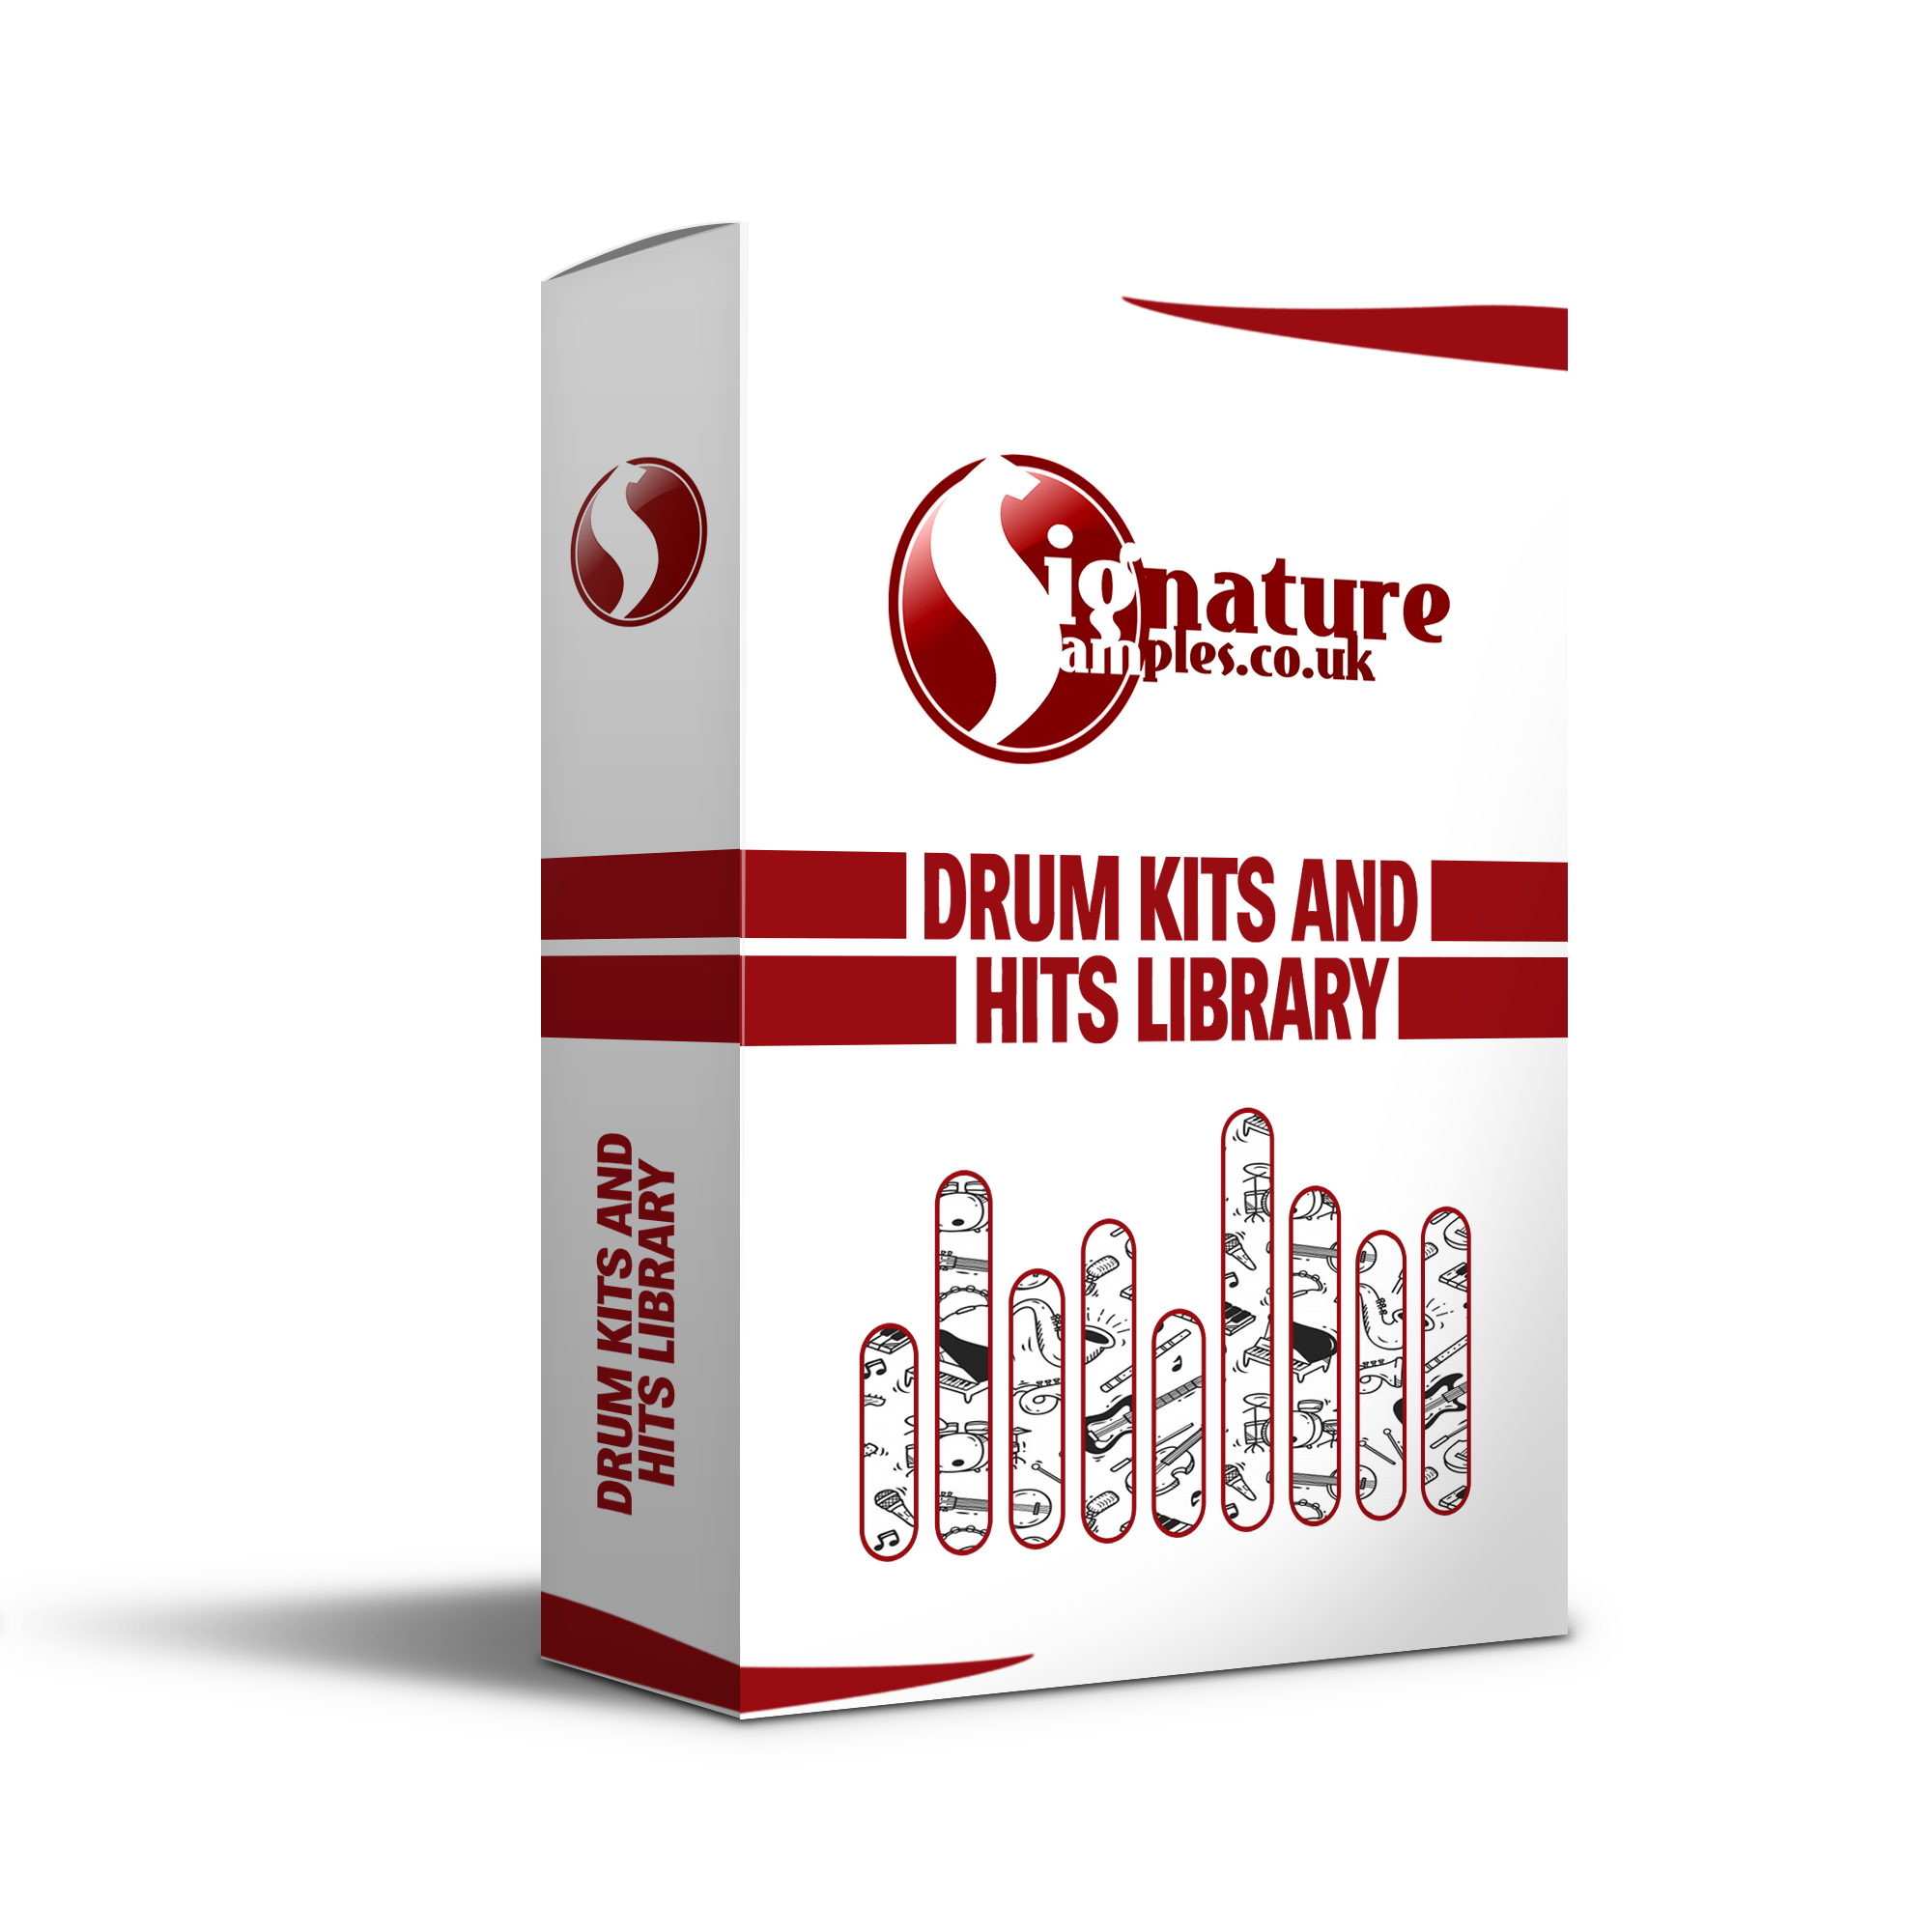 Drum Hits, Kits And Loops Library - £2.69 - A collection of all the drum one shots and kits I have created. From organic crunchy sounding drum hits to metallic or porcelain one shots. This pack is rammed full of original drum one shots and loop that will be sure to give your music the unique edge above everyone else's.